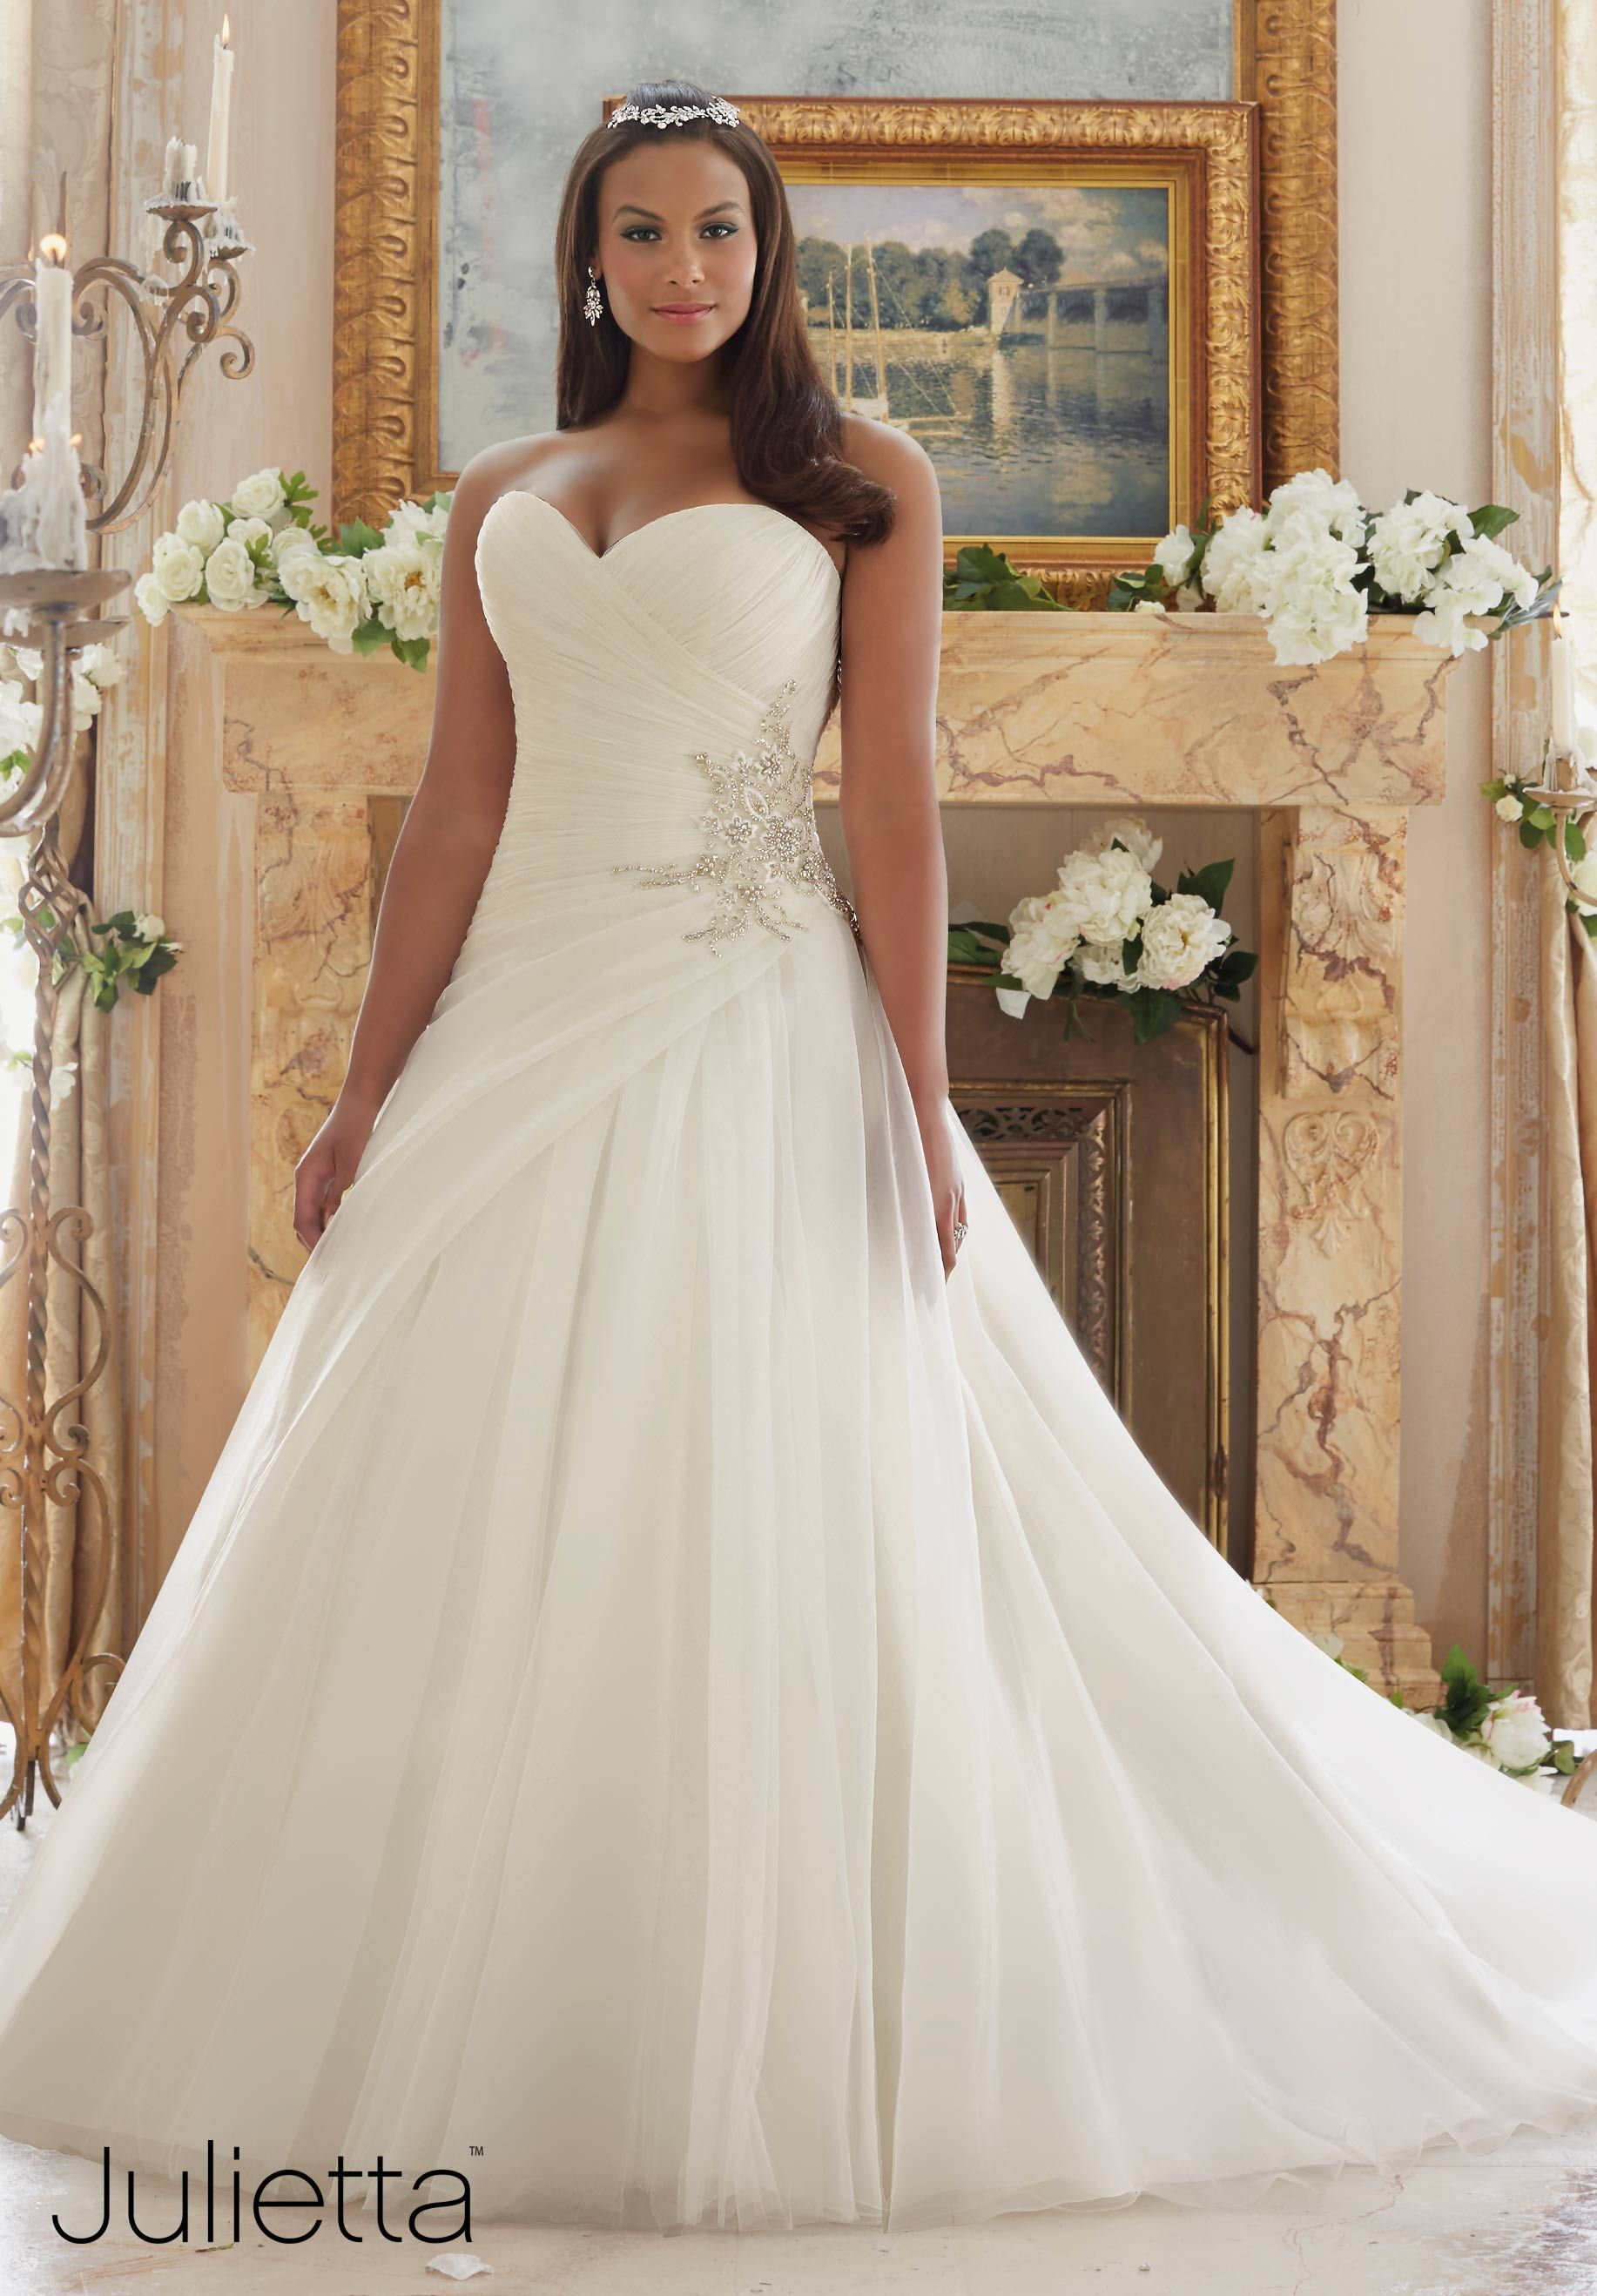 Plus size wedding gowns mori lee julietta collection for A big wedding dress